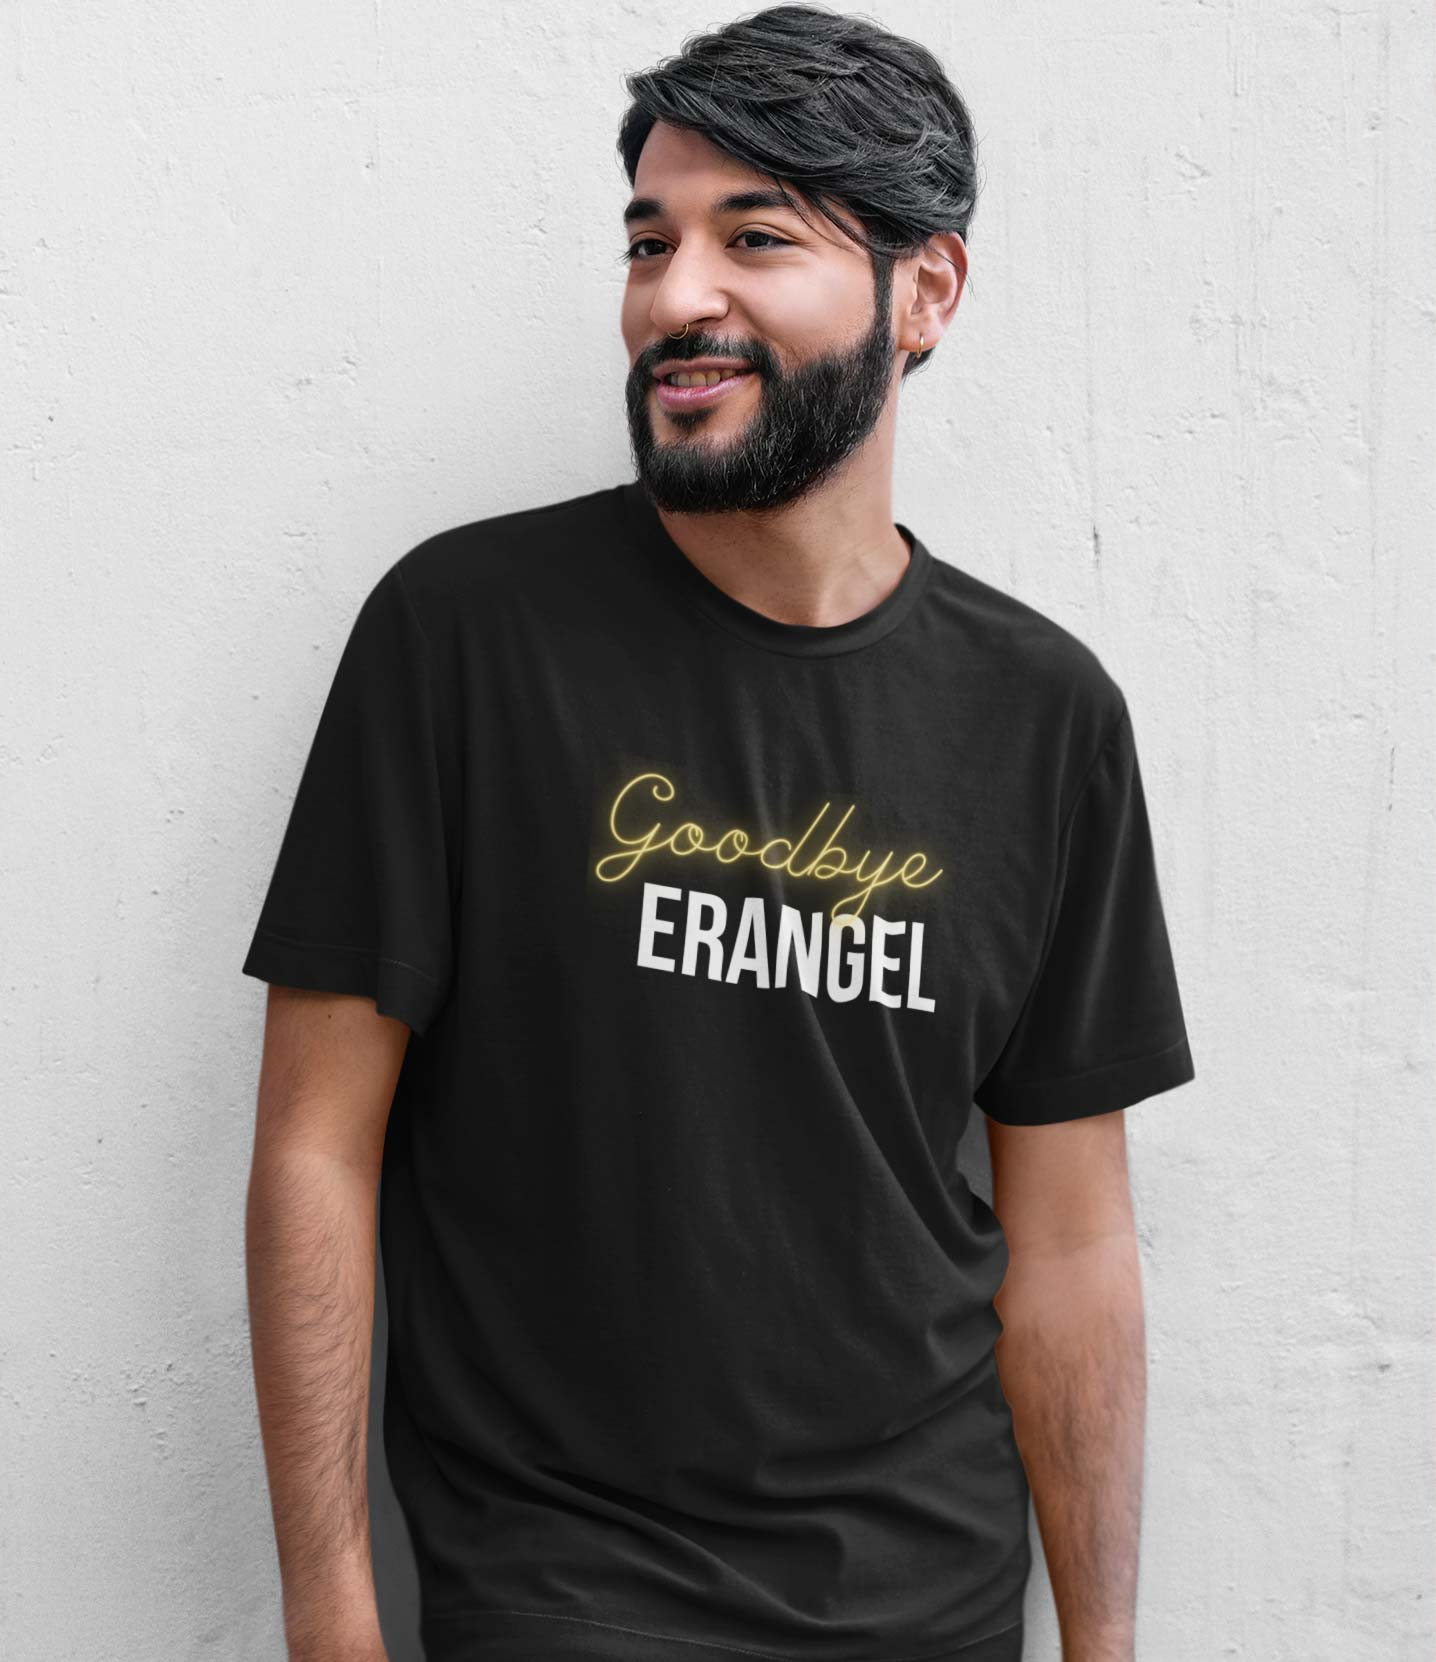 Goodbye Erangel T-Shirt